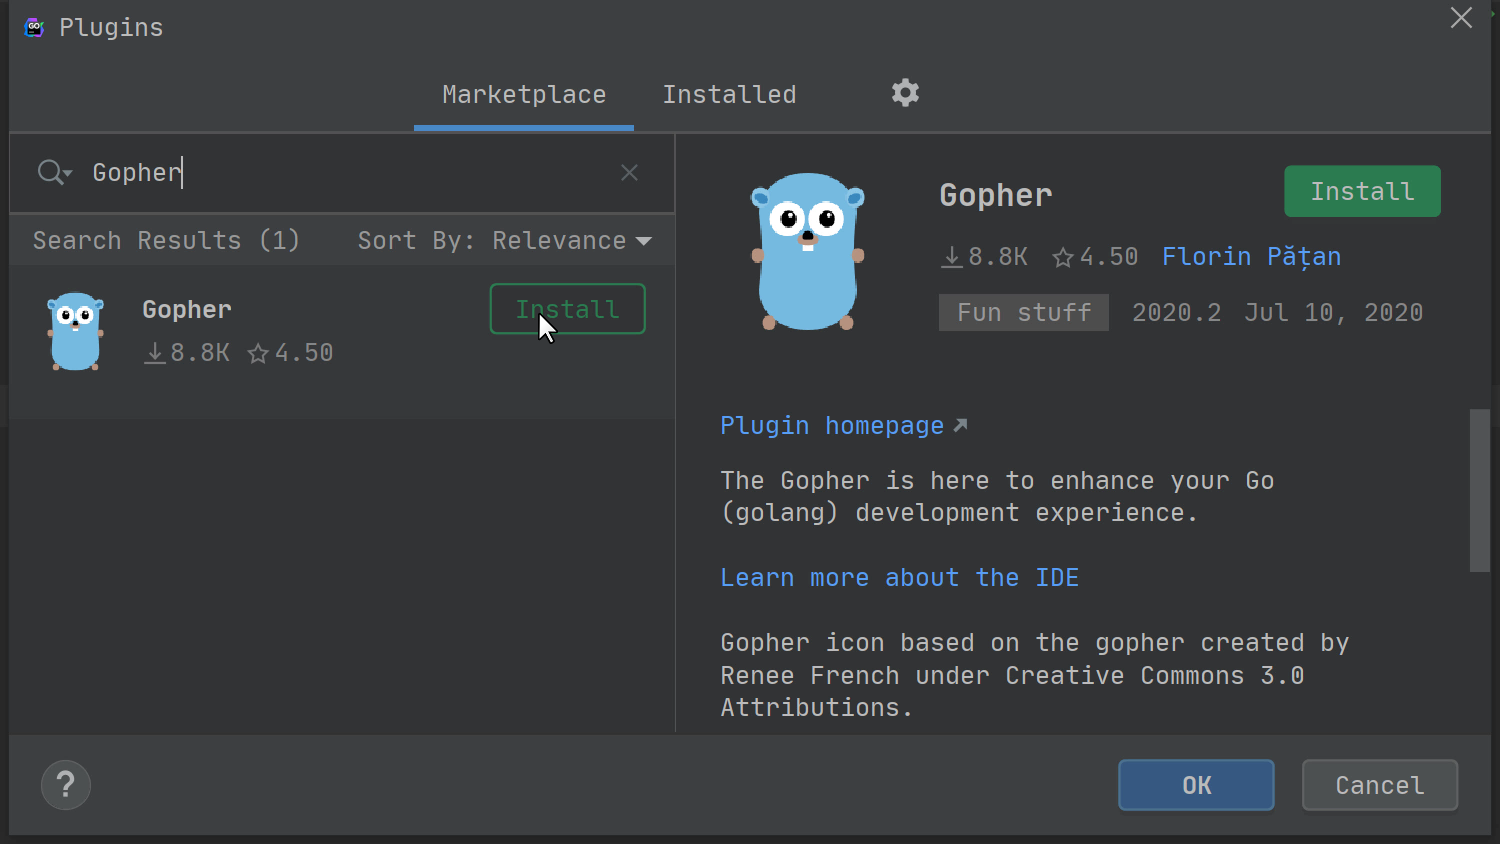 Gopher plugin